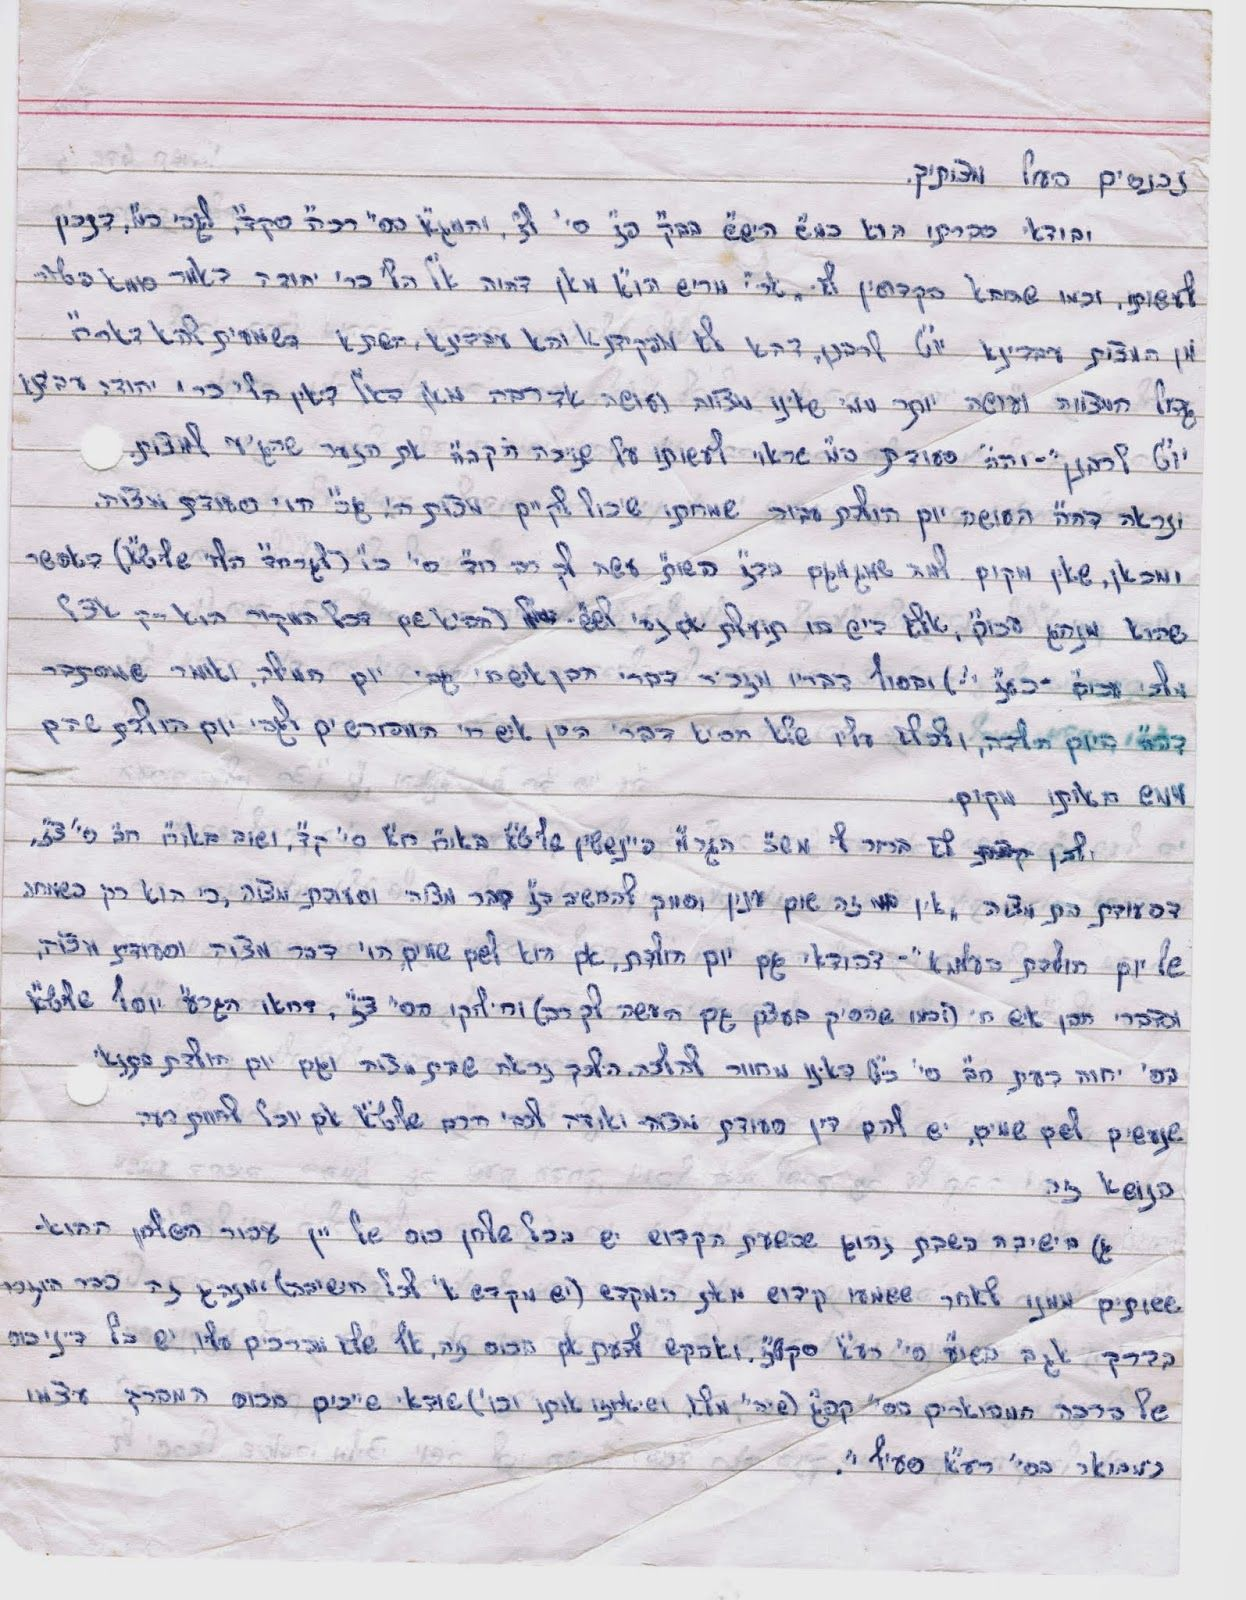 My Letter To The Re Ii  Rivevos Ephraim And Other Halachic